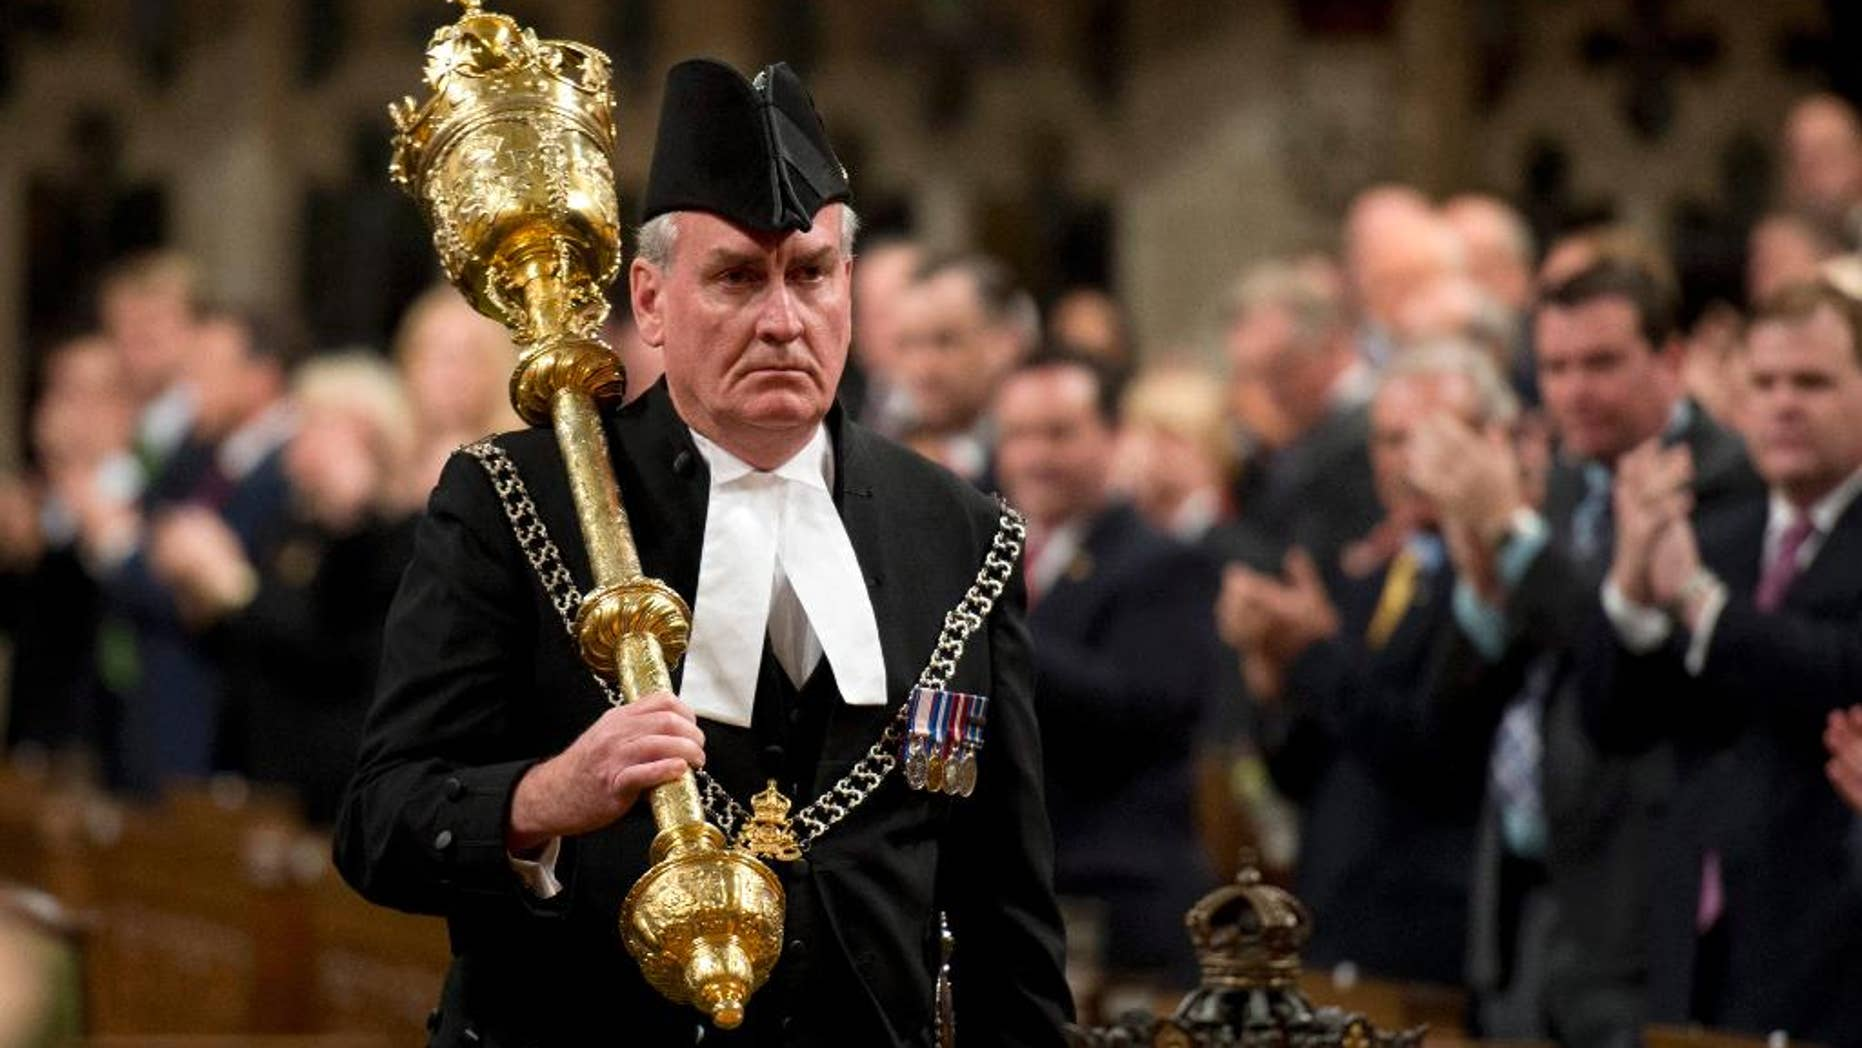 FILE - In a Thursday, Oct.  23, 2014 file photo, Sergeant-at-Arms Kevin Vickers receives a standing ovation as he enters the House of Commons in Ottawa. The Canadian Press reported Thursday, Jan. 8, 2015 that Vickers, hailed as a hero for killing the gunman who stormed Canada's parliament last year will be named ambassador to Ireland.  (AP Photo/The Canadian Press, Adrian Wyld, File)